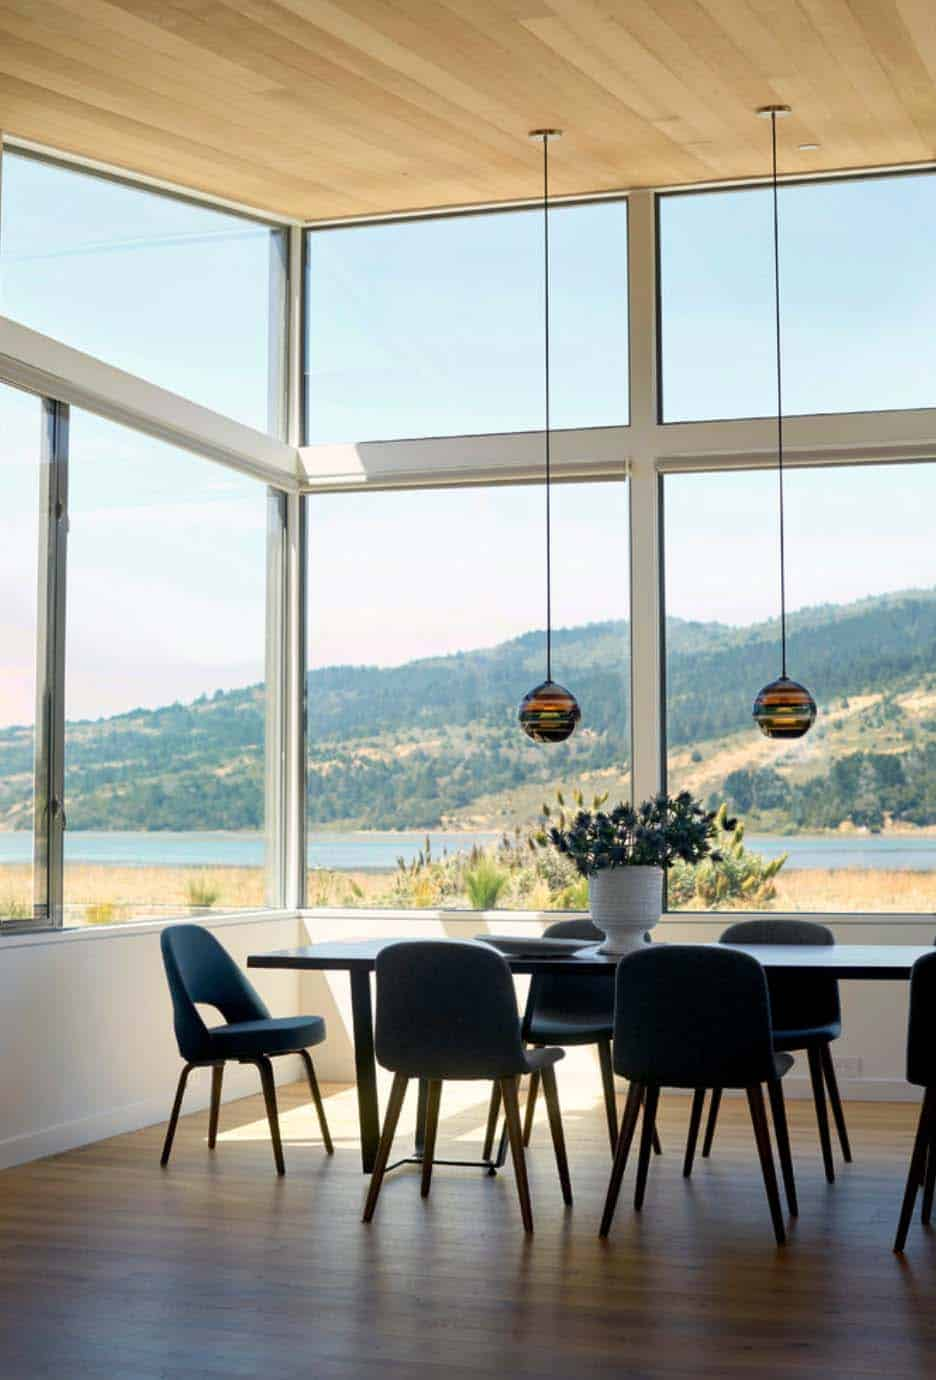 stinson-beach-lagoon-residence-turnbull-griffin-haesloop-10-1-kindesign